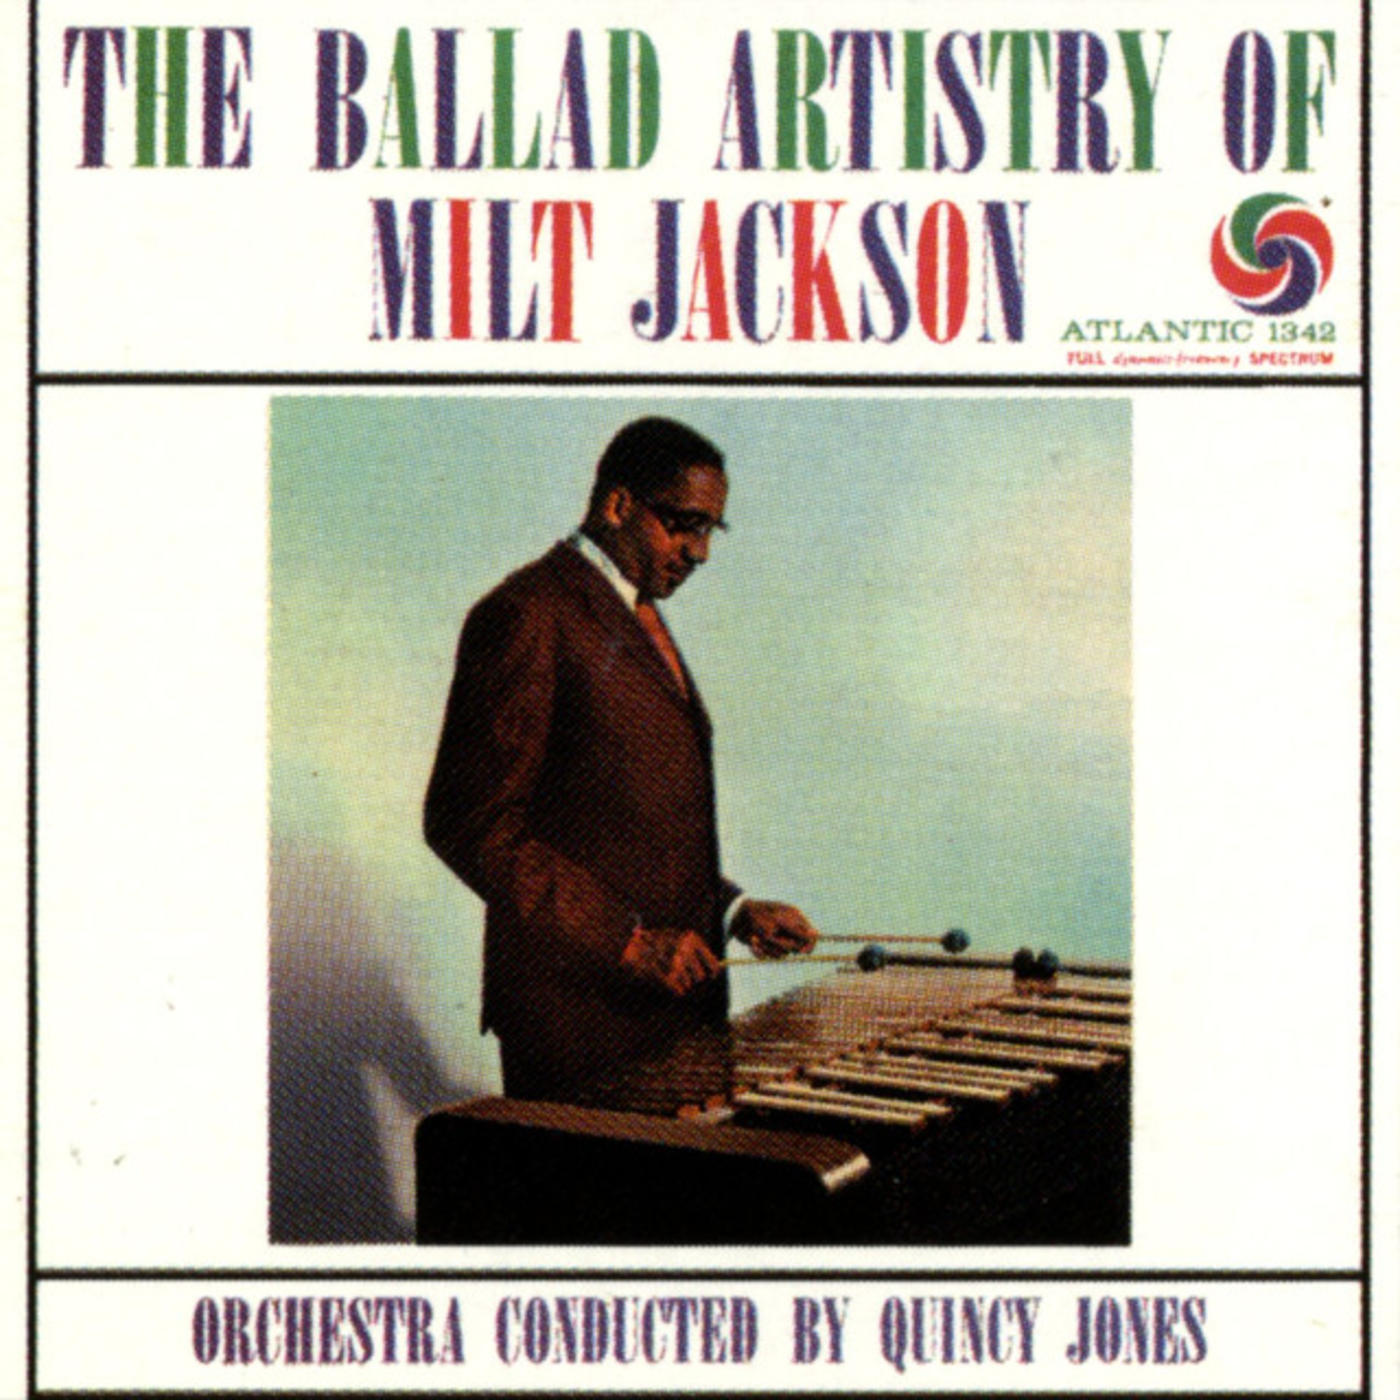 The Ballad Artistry Of Milt Jackson